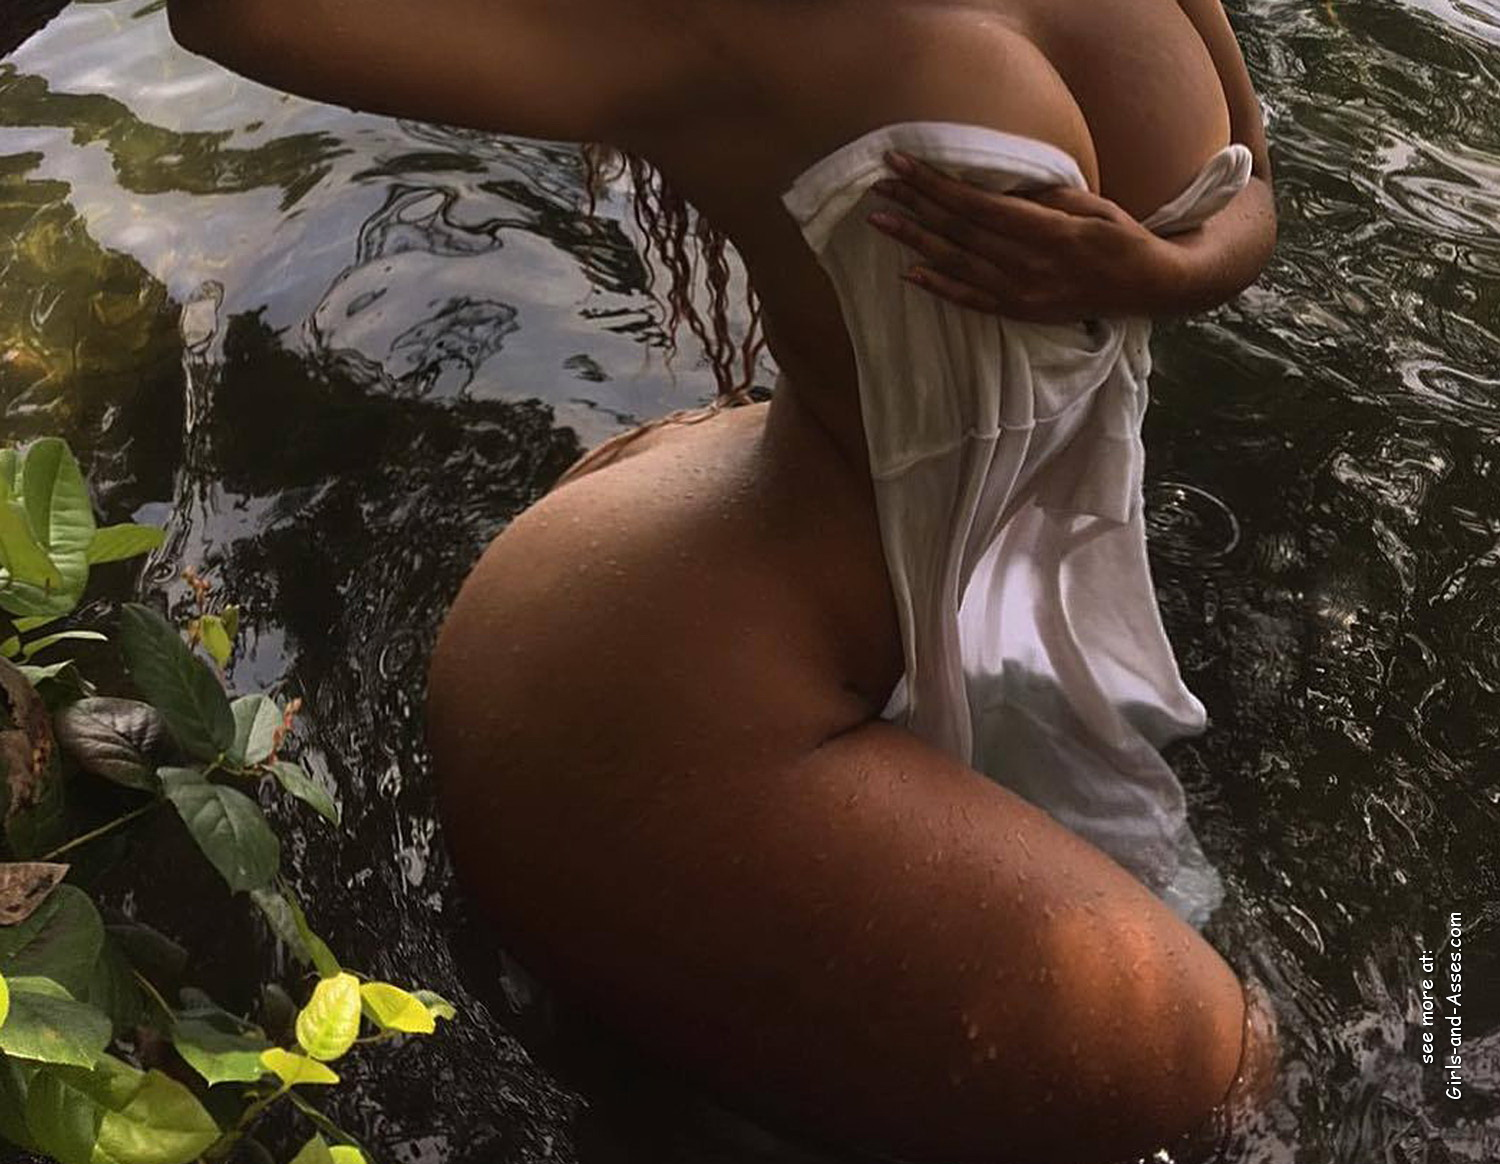 naked girl with big ass in a river picture 03535